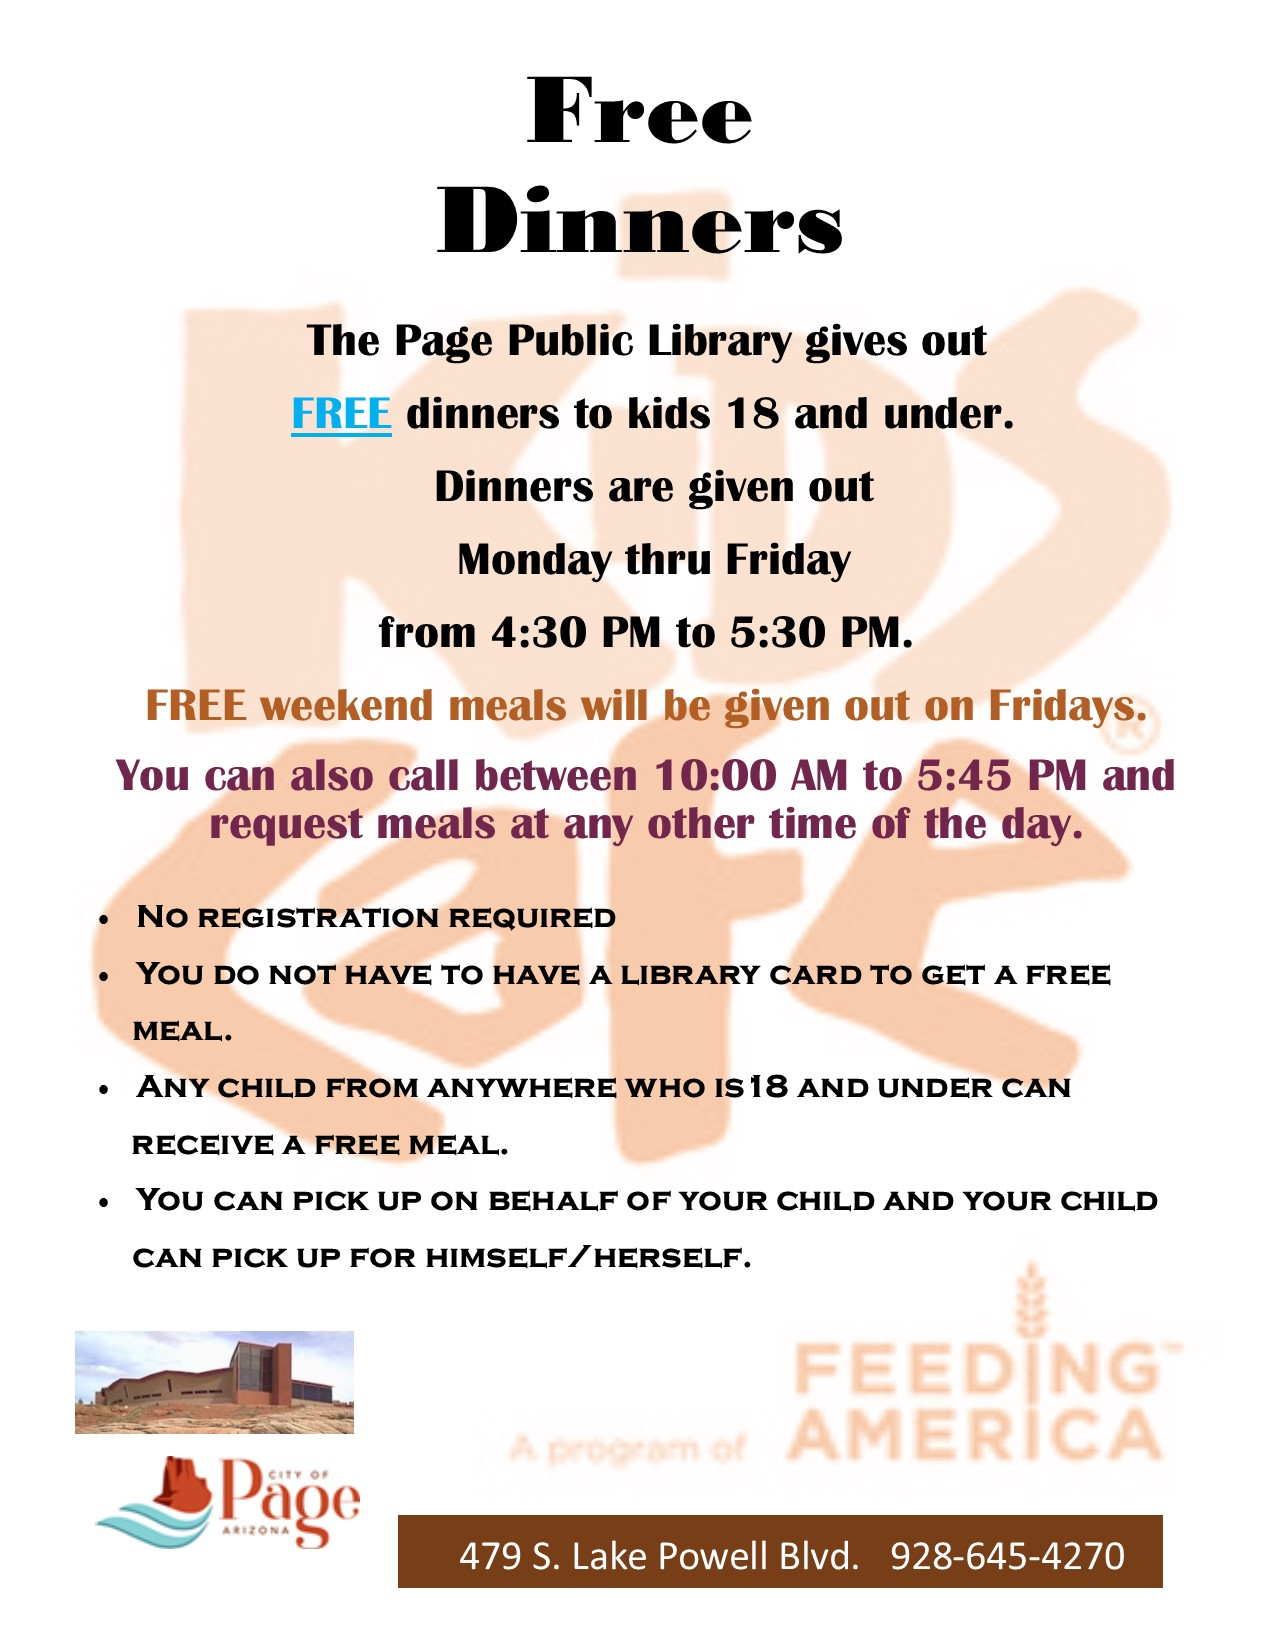 FREE Dinners Poster